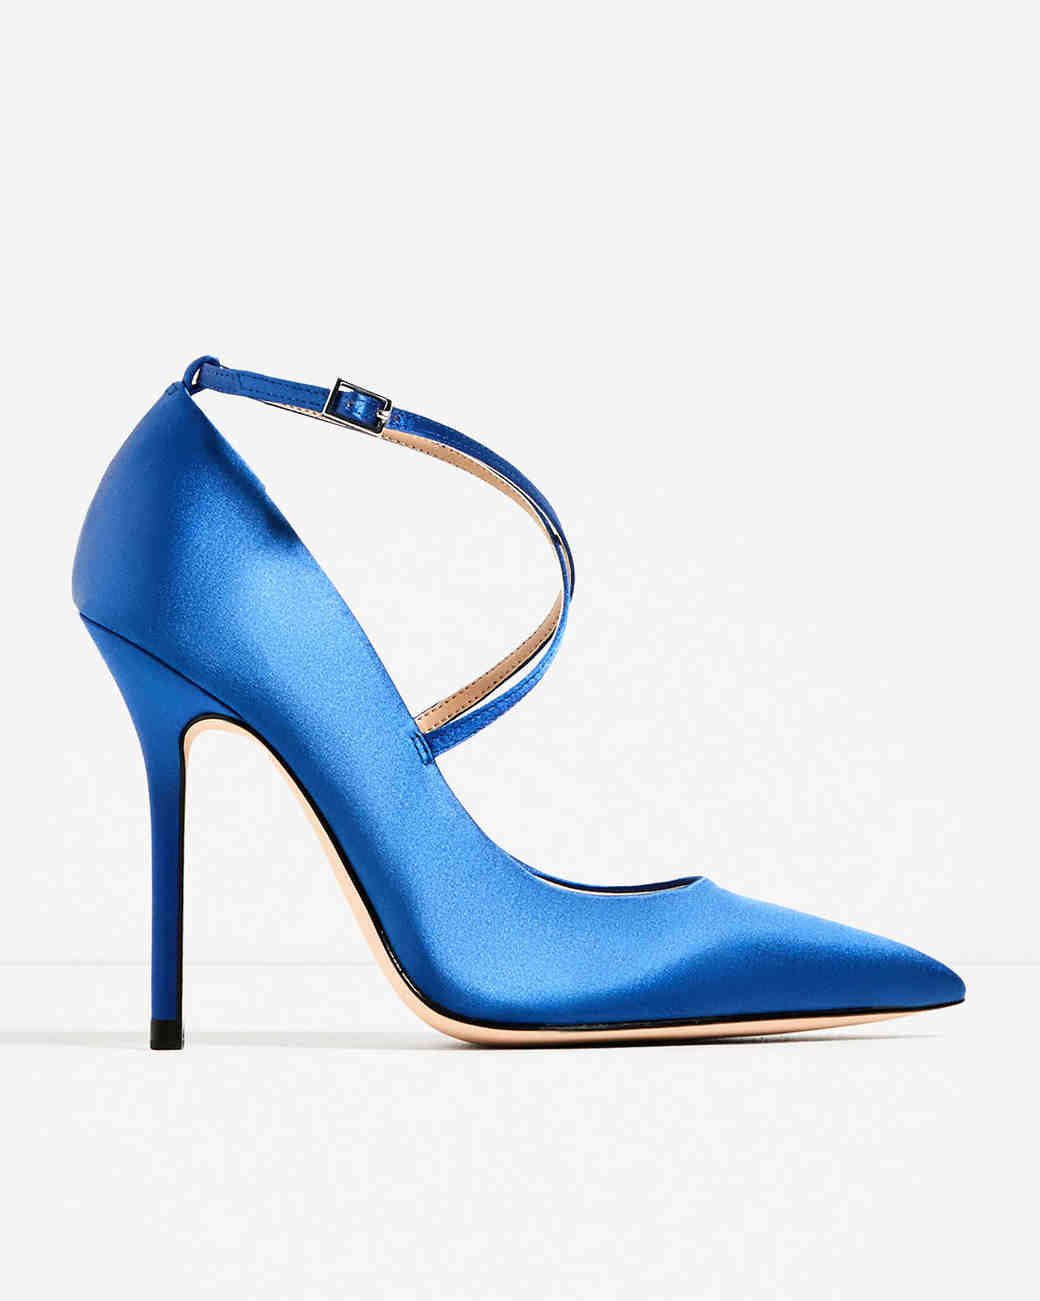 Closed Toe Evening Shoes to Rock for Your Winter Wedding